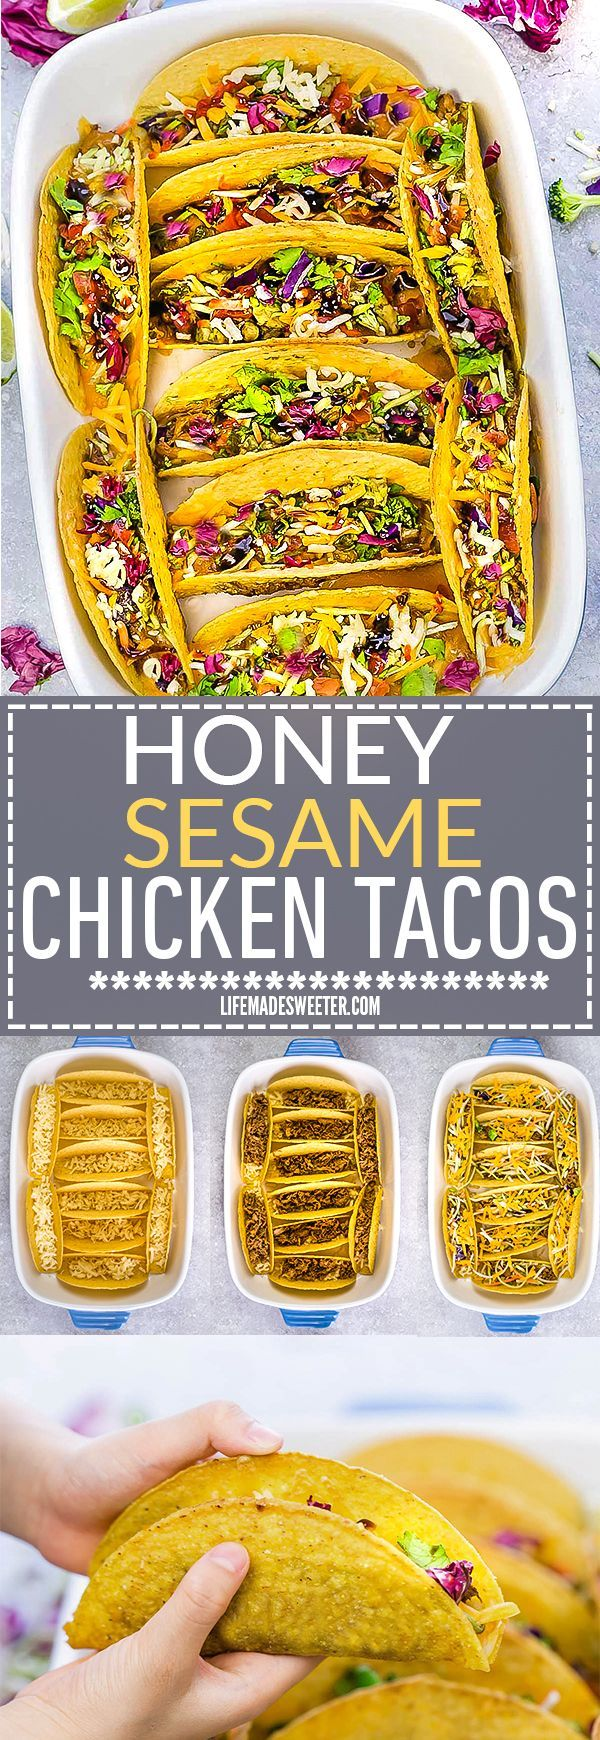 Oven Baked Asian Sesame Chicken Tacos – a simple and delicious recipe perfect for busy weeknights and Cinco de Mayo. Best of all, a short recipe video. Layered with sweet and savory sesame chicken, rainbow vegetables, and a blend of 3 cheeses. Flavor packed and addicting!